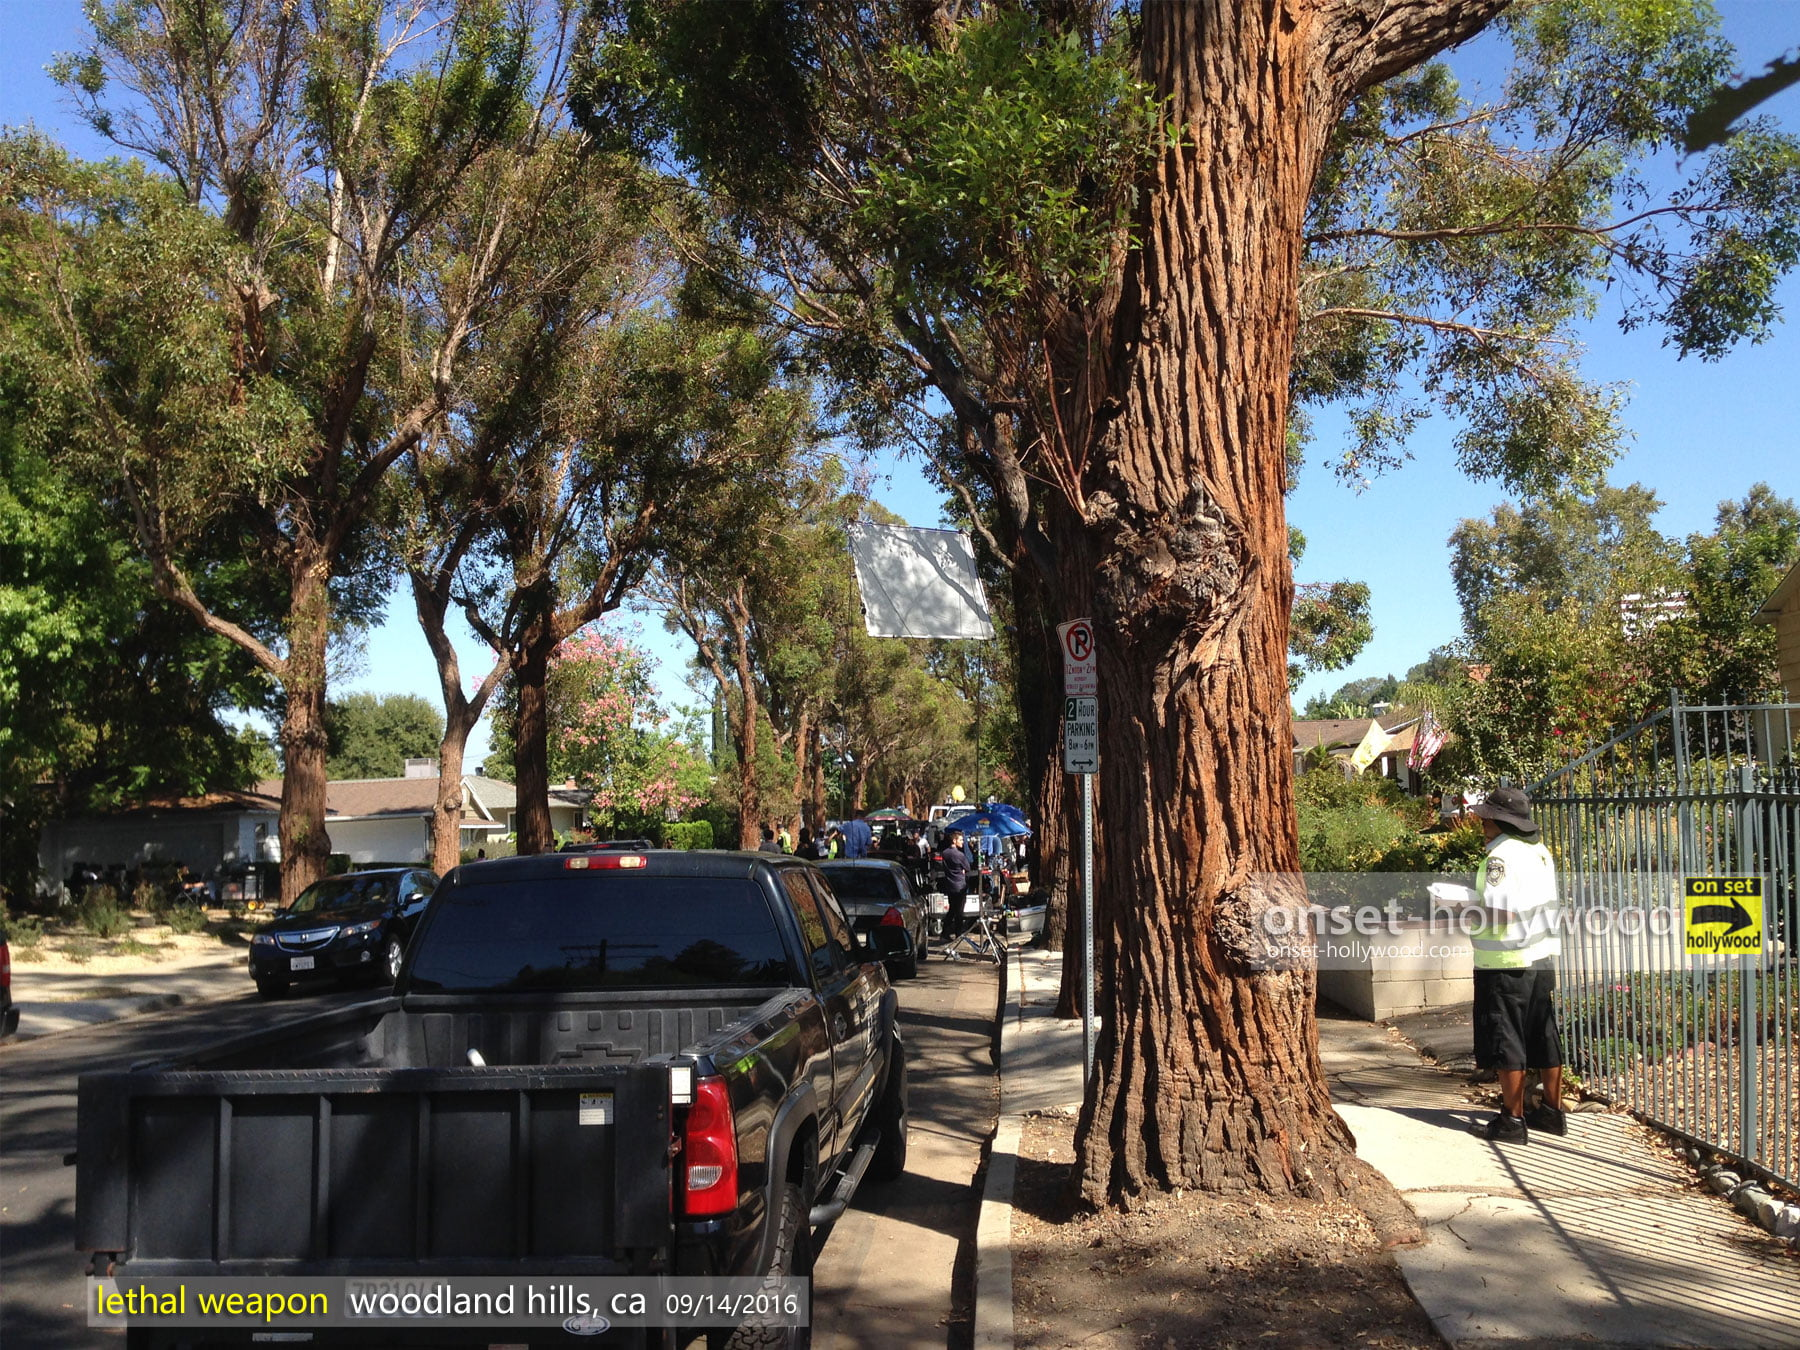 lethal-weapon-season-1-filming-locations-woodland-hills